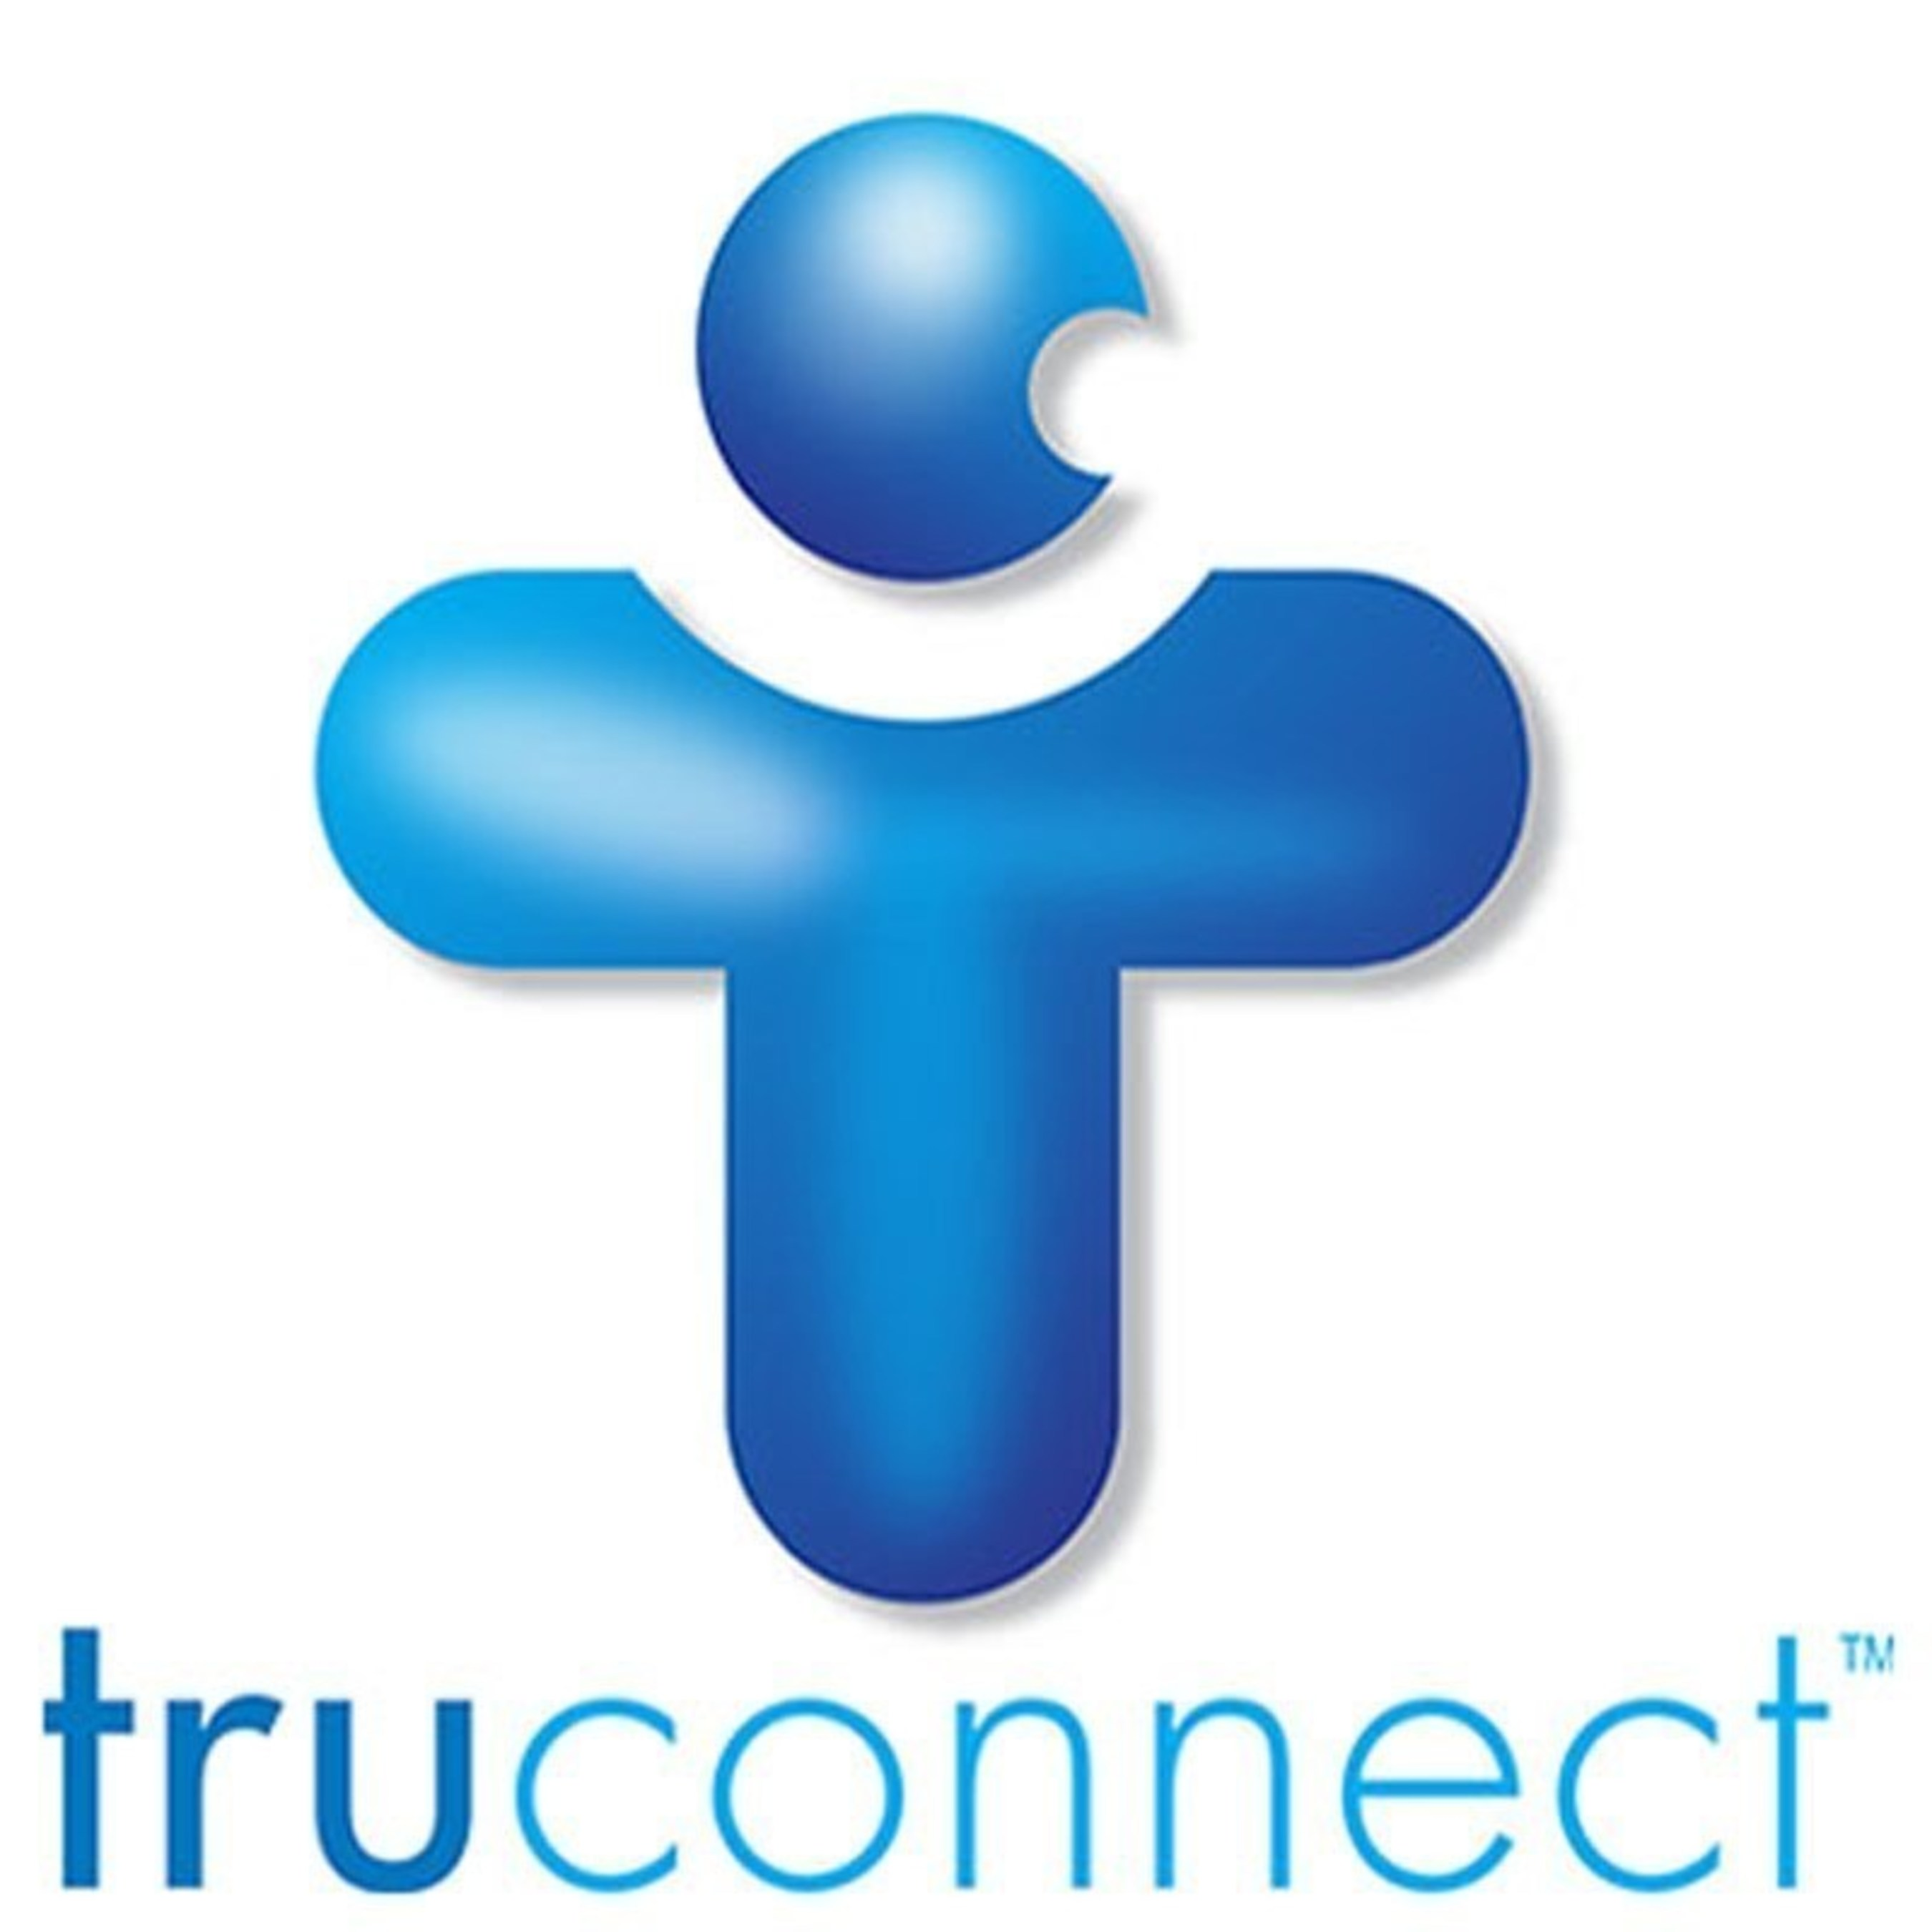 TruConnect Names Robert Yap as New President